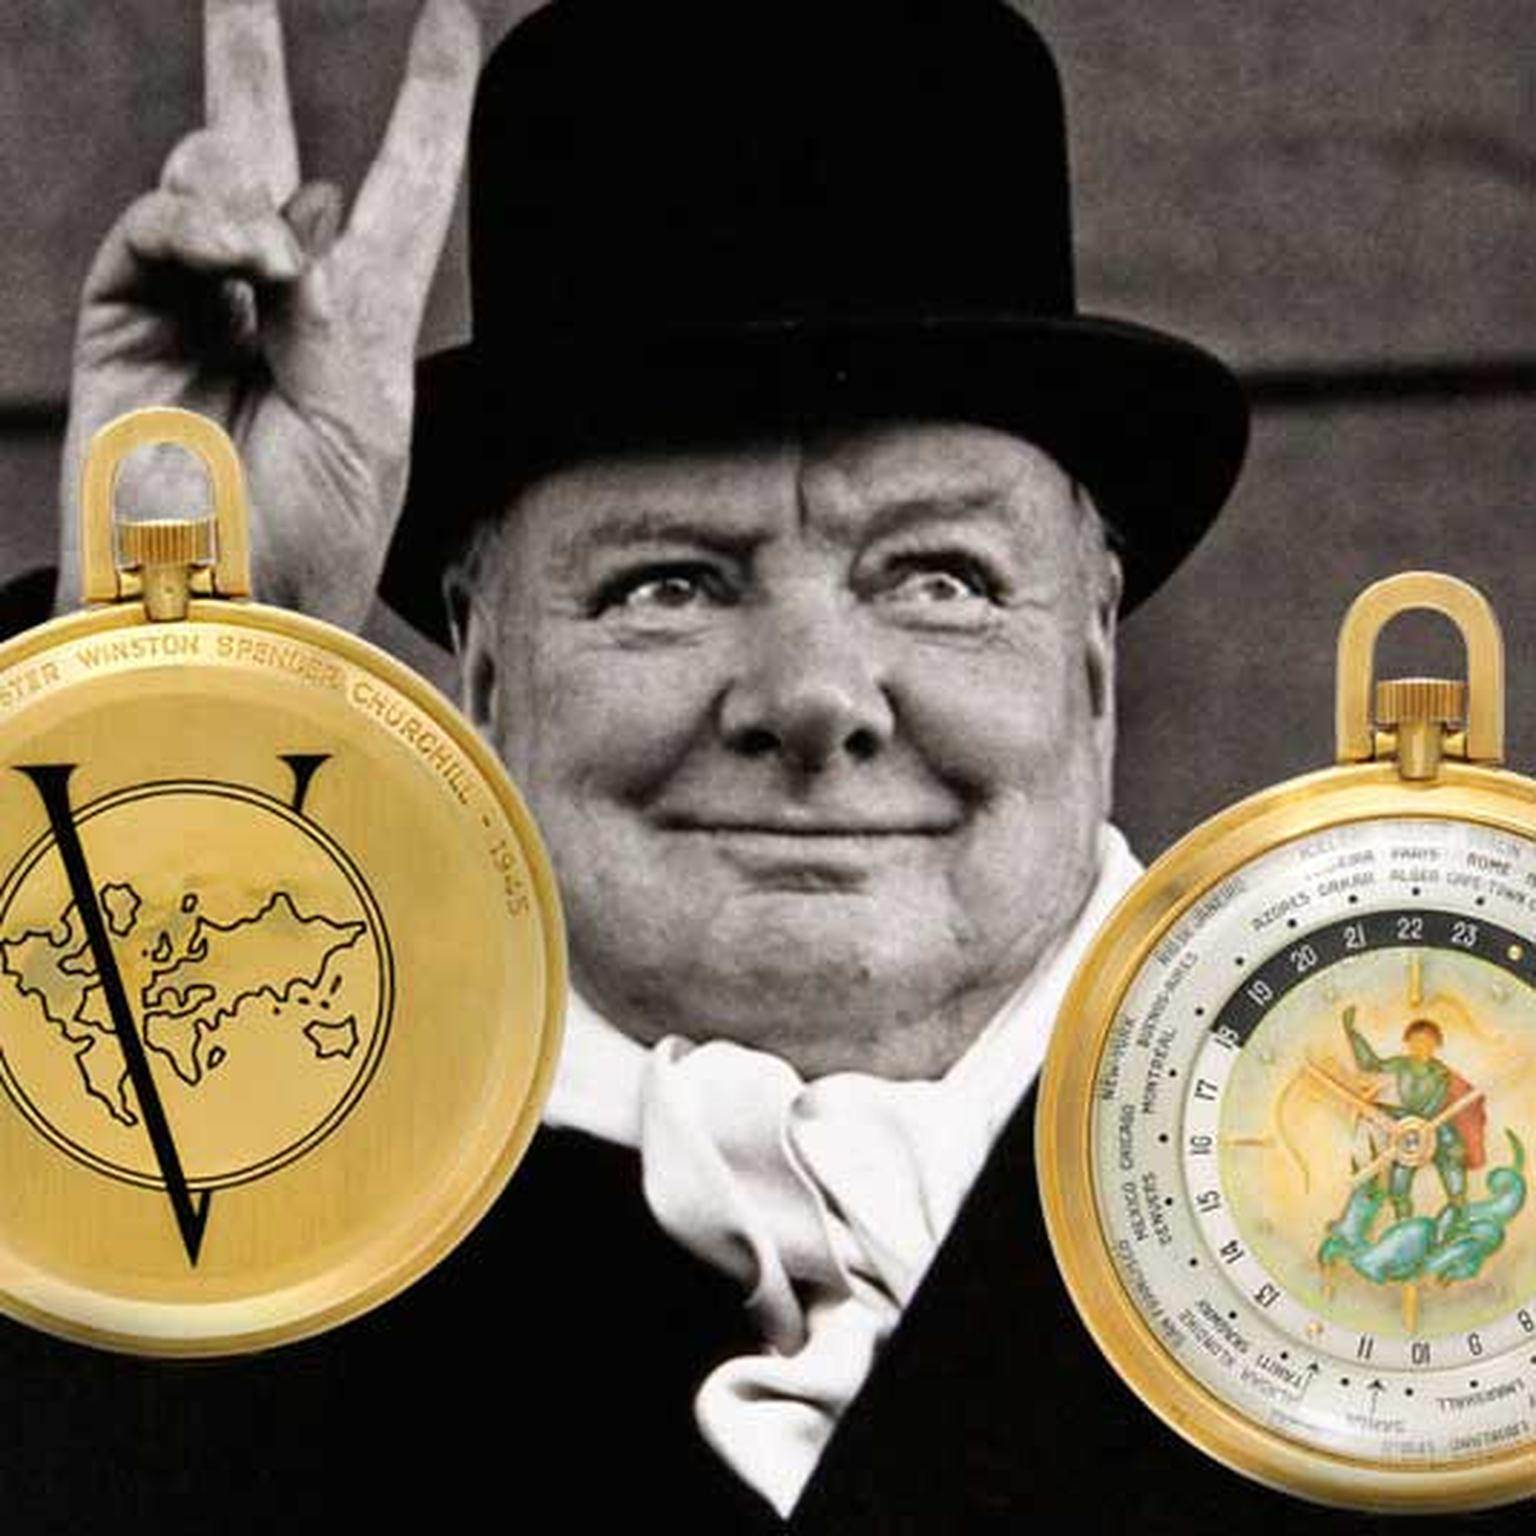 Winston Churchill V for Victory watch